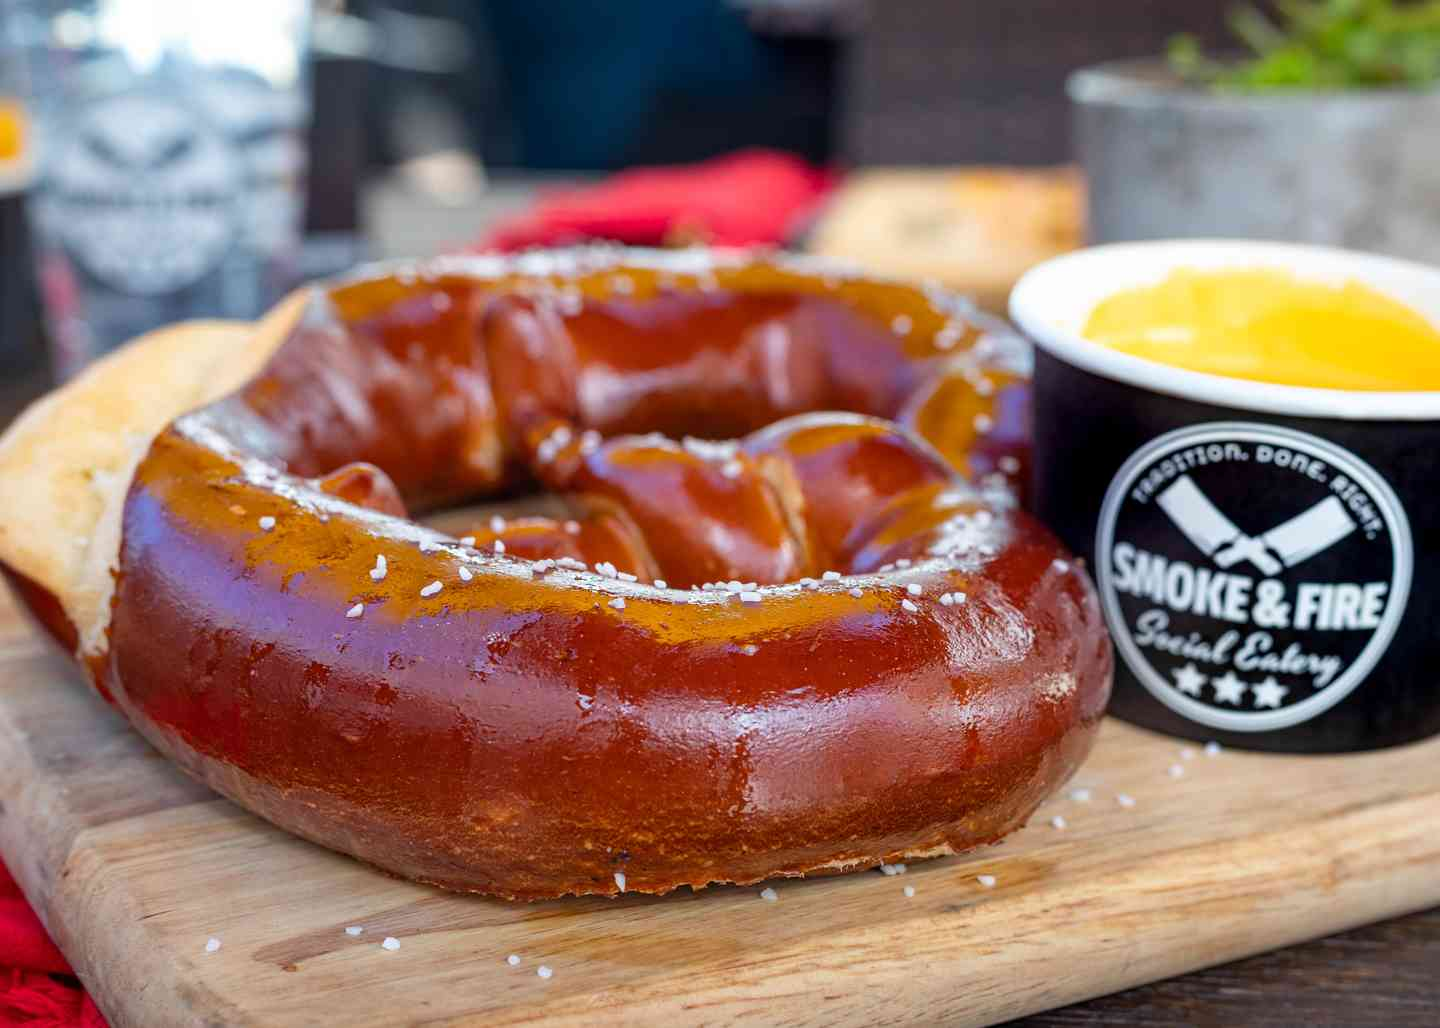 Giant Pretzel with Cheese Sauce